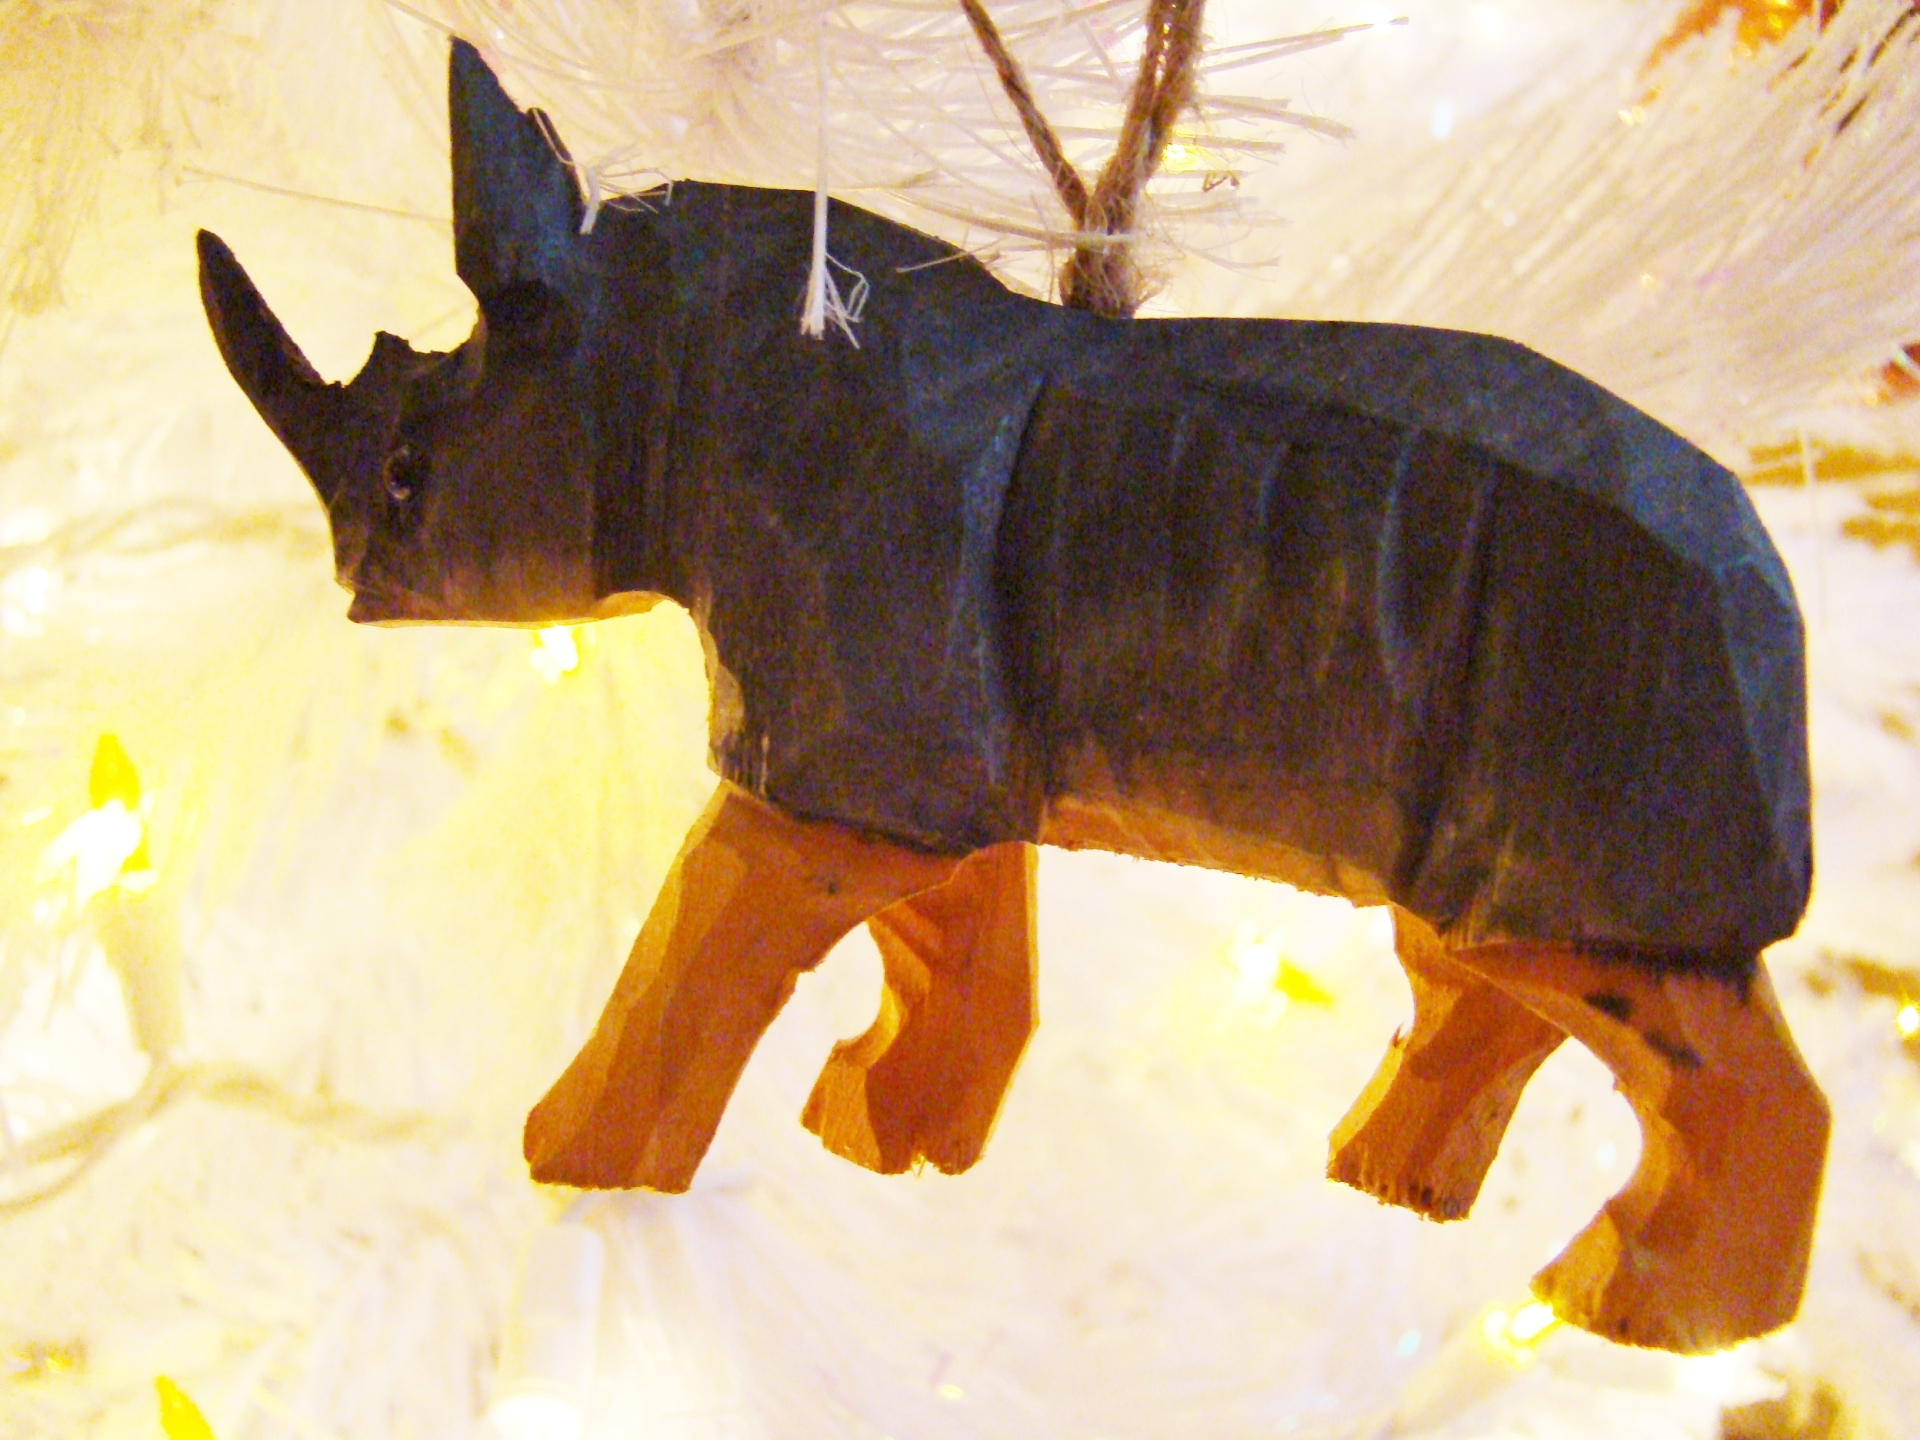 Fiorito Interior Design, interior design, Homes For The Holidays, African, holiday tree, carved wooden rhino ornament